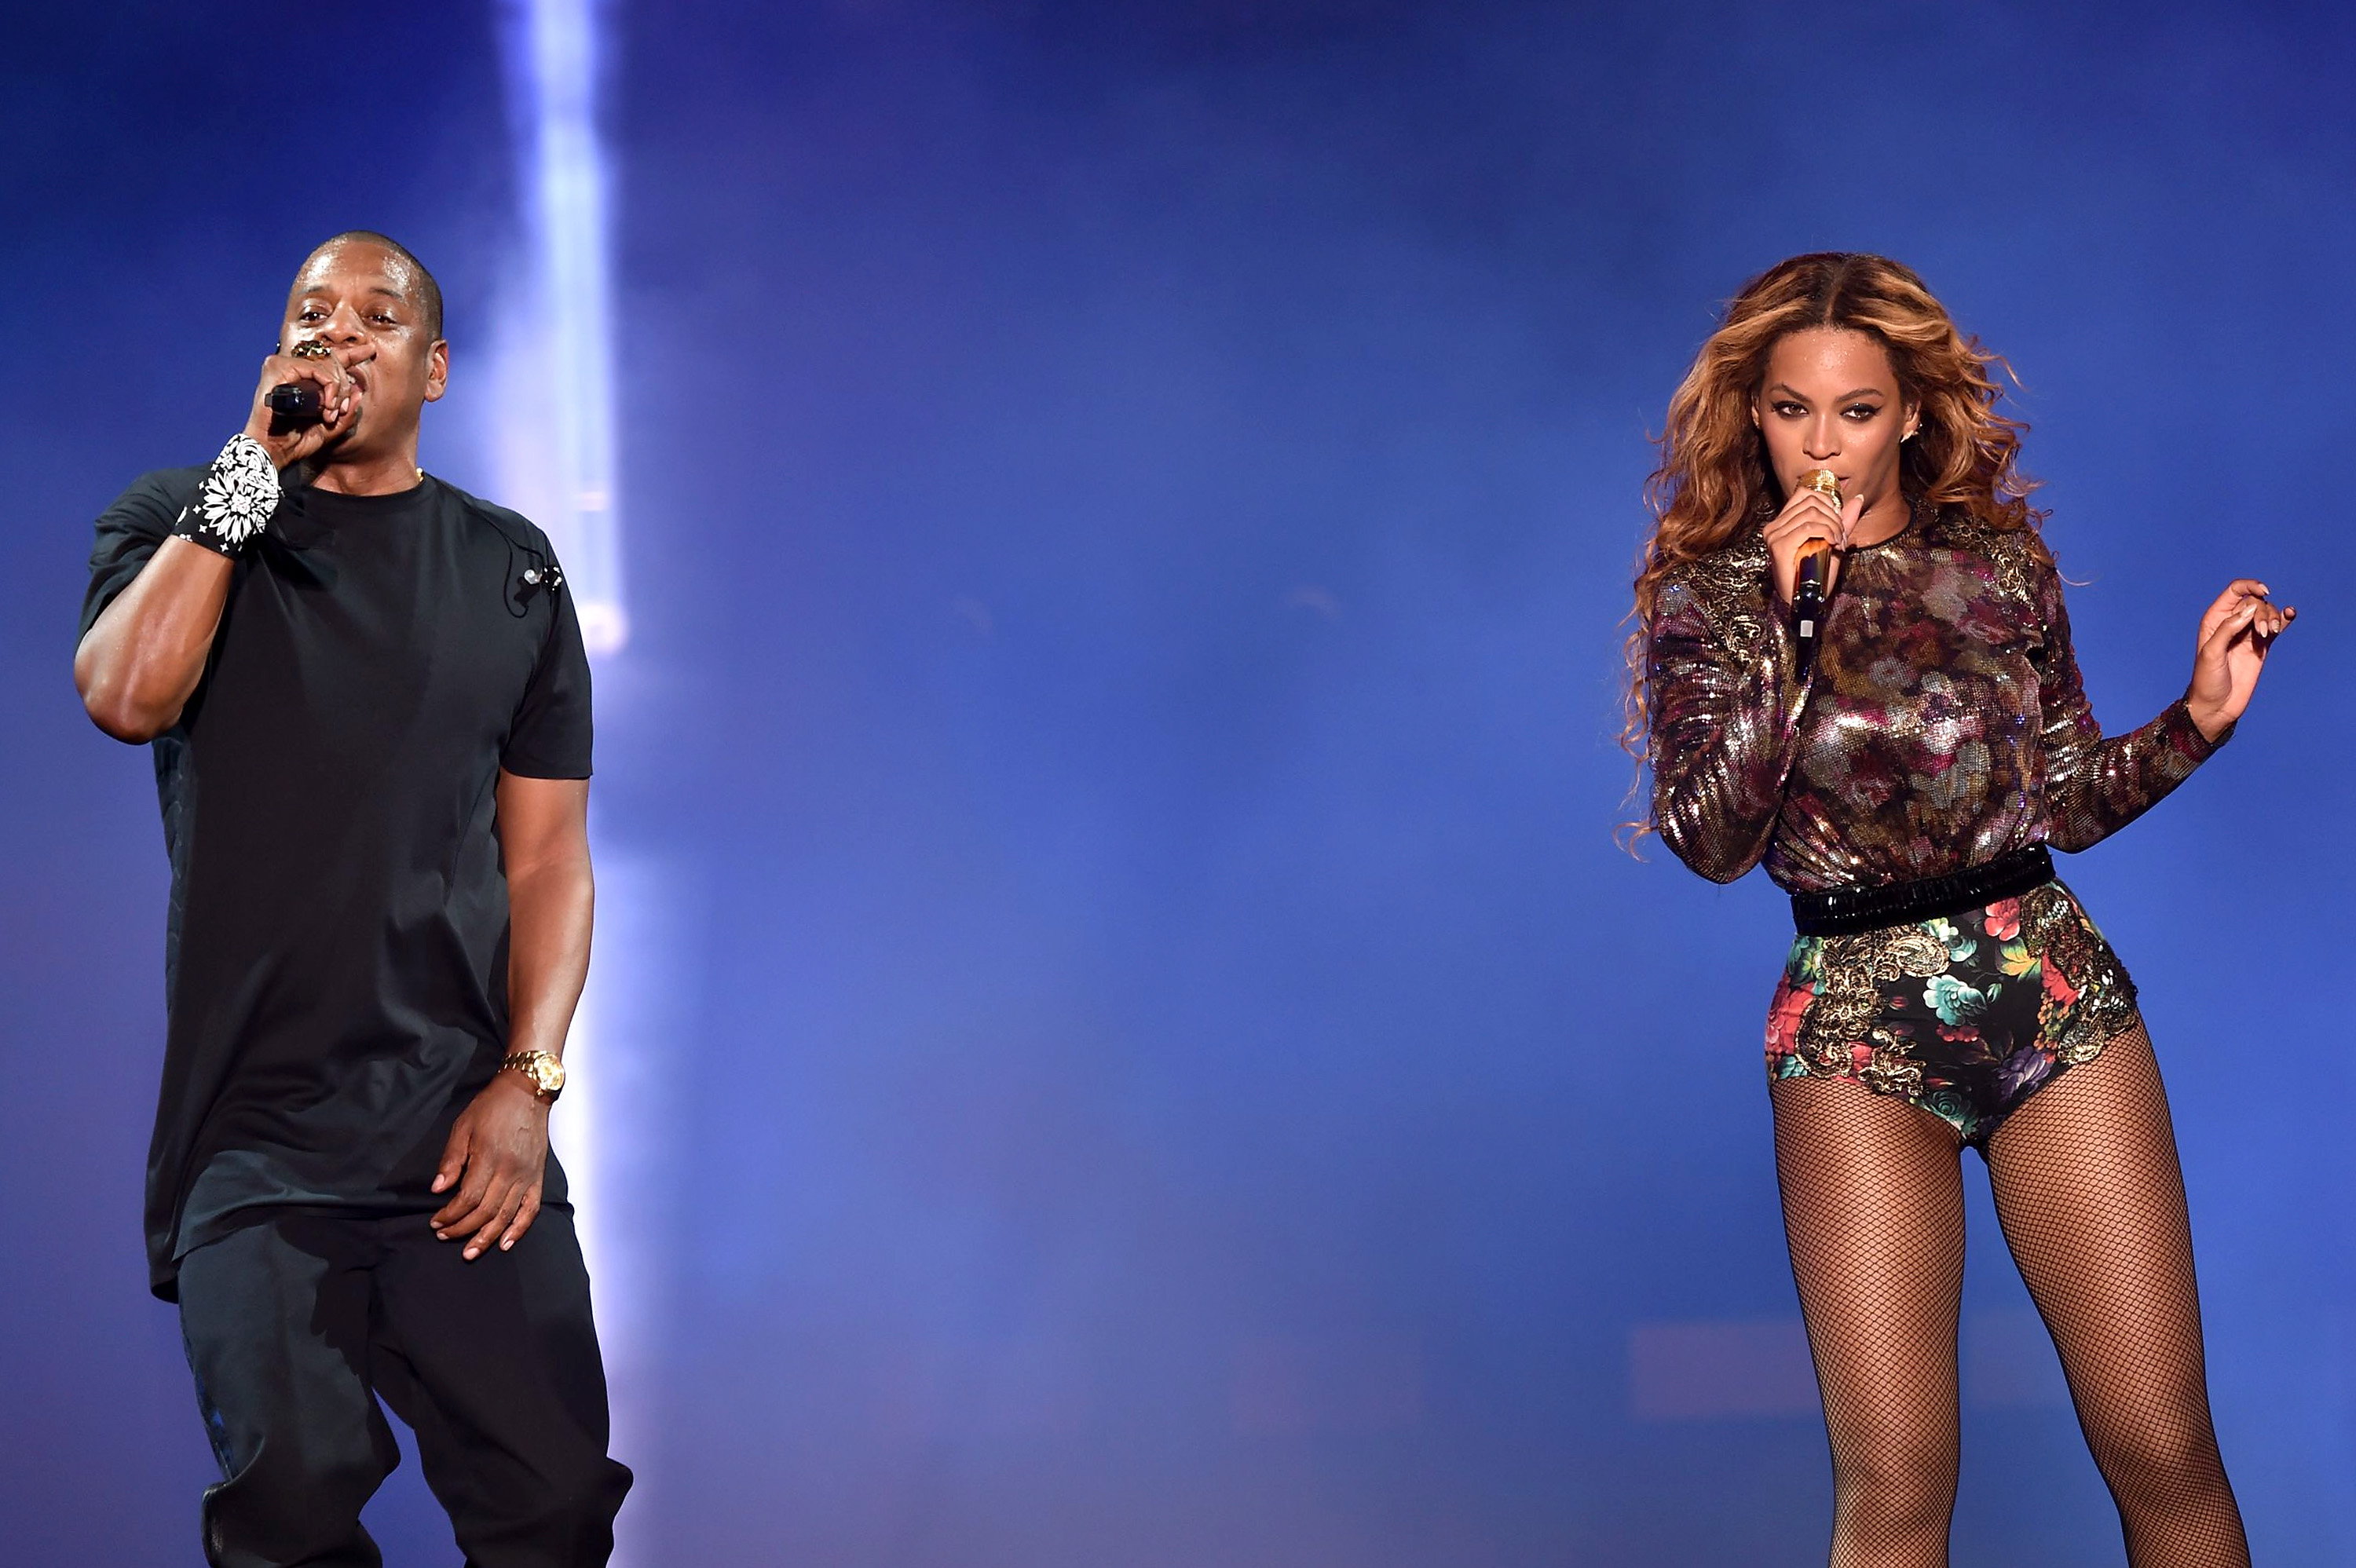 Jay Z and Beyoncé are having a benefit concert for a *super* important cause